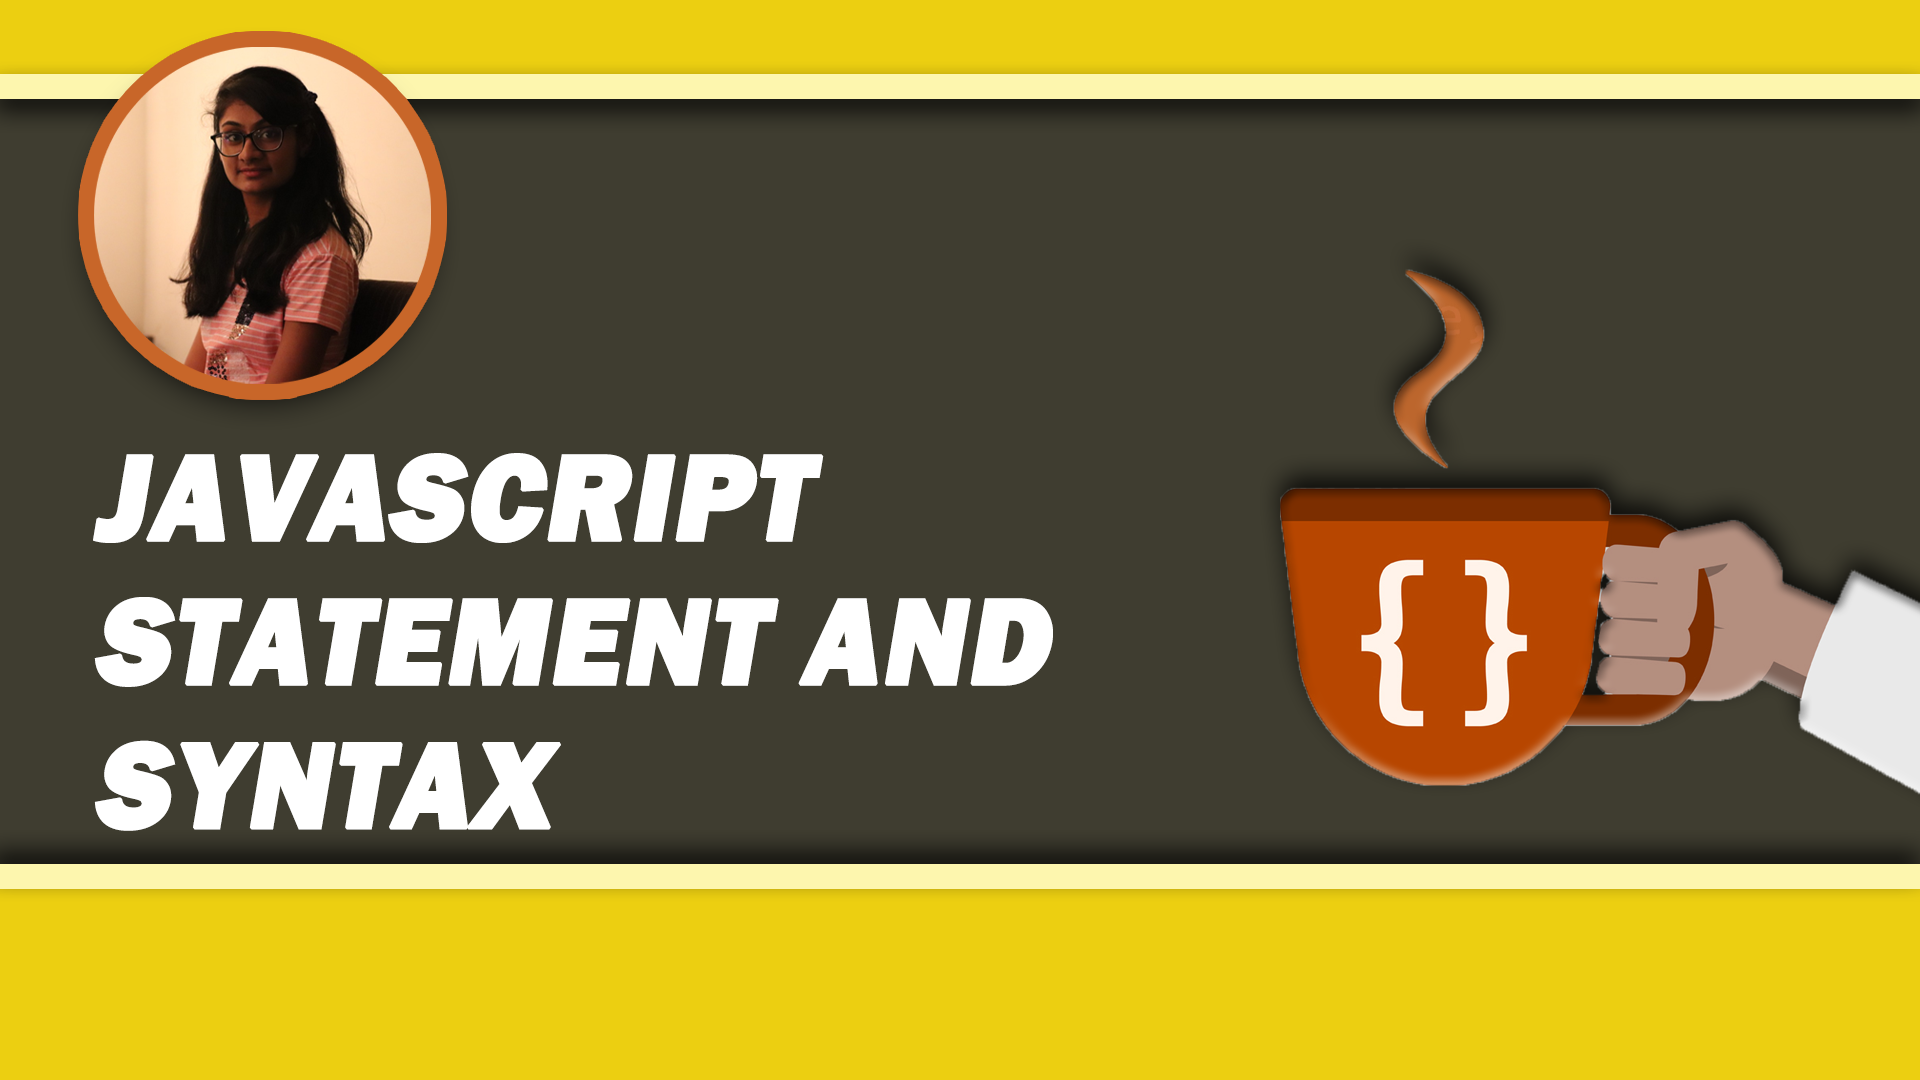 JavaScript statement and syntax